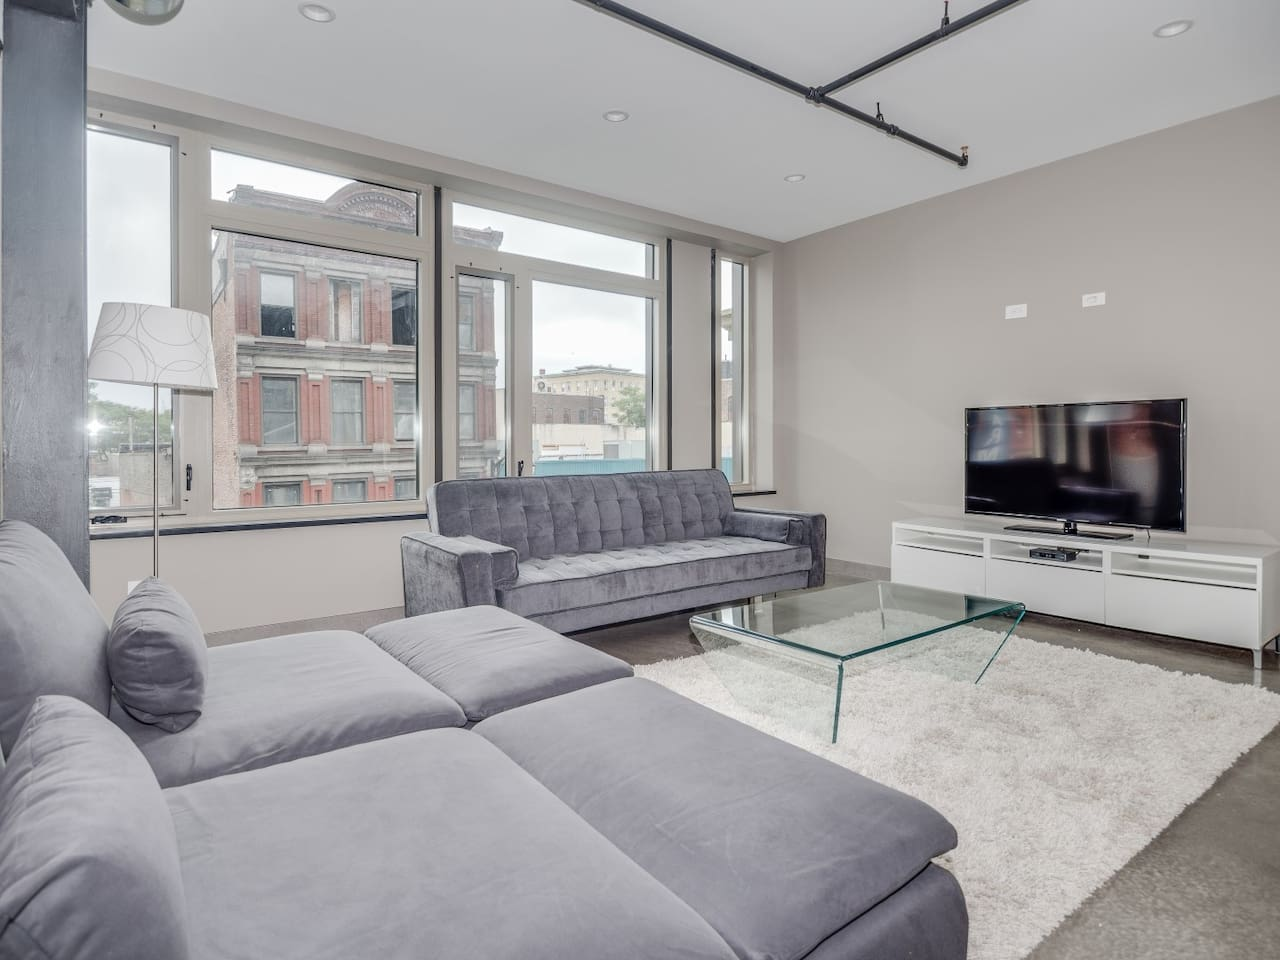 If you've always dreamed of living in a Soho loft, this 1,100 square-foot (102 square meters) two-bedroom apartment in the heart of Historic Downtown Jersey City is just as hip.